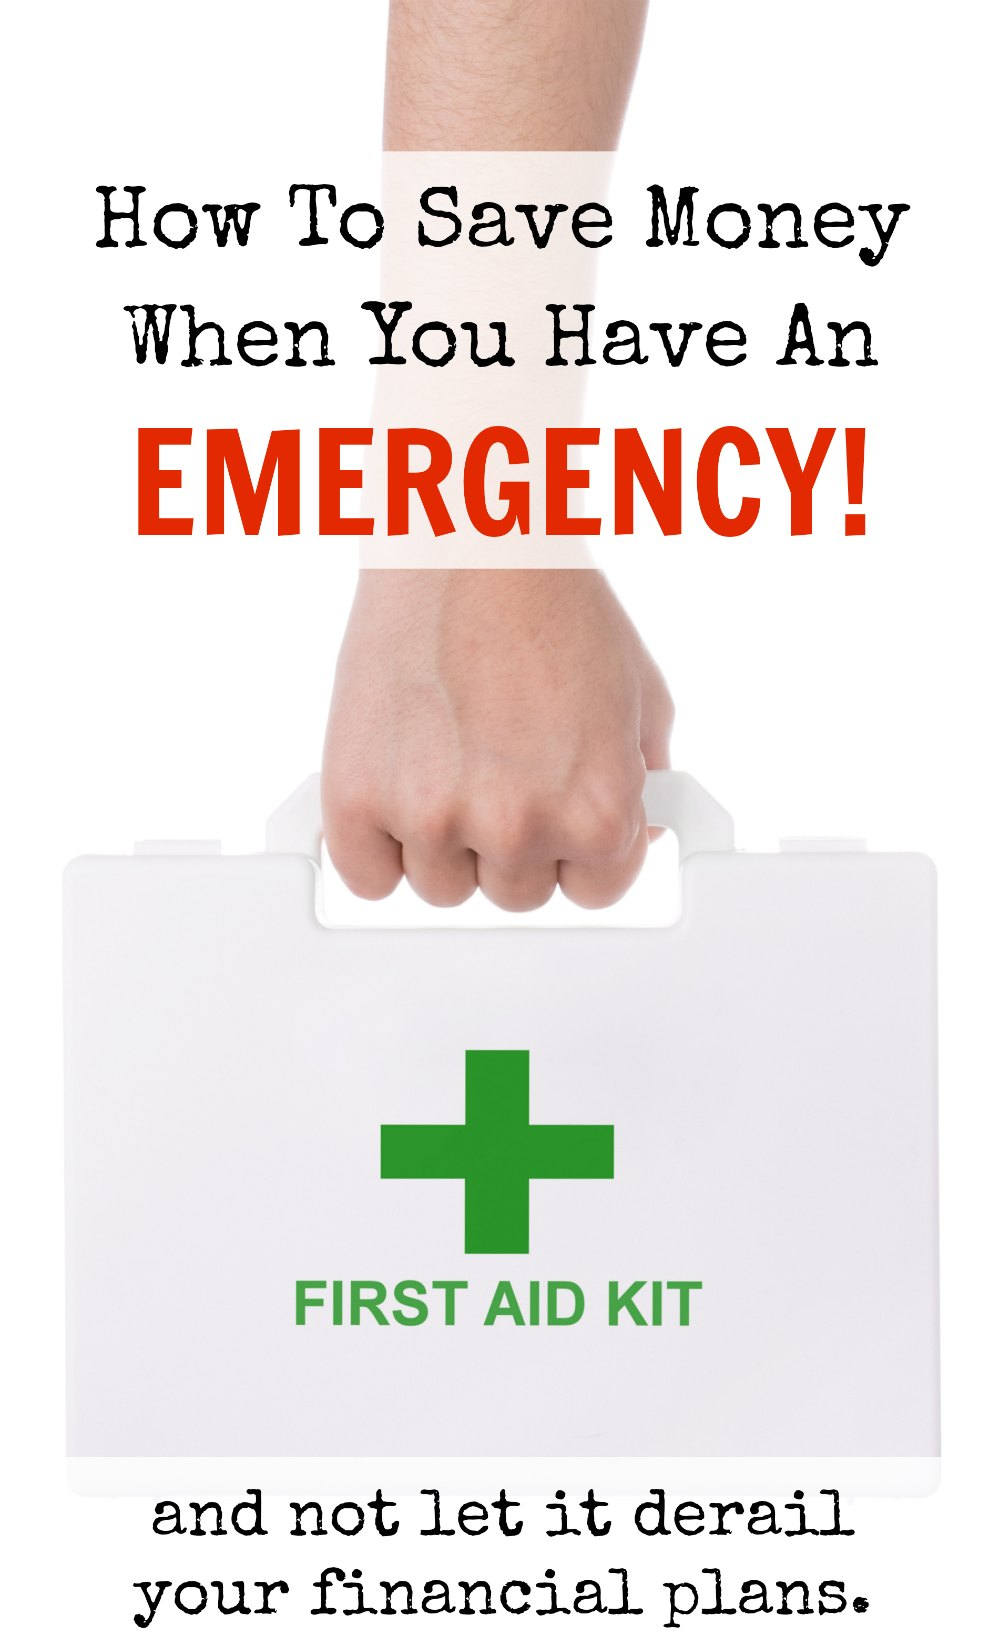 How To Save Money On Emergencies So It Doesn't Derail Your Financial Plan | KansasCityMamas.com